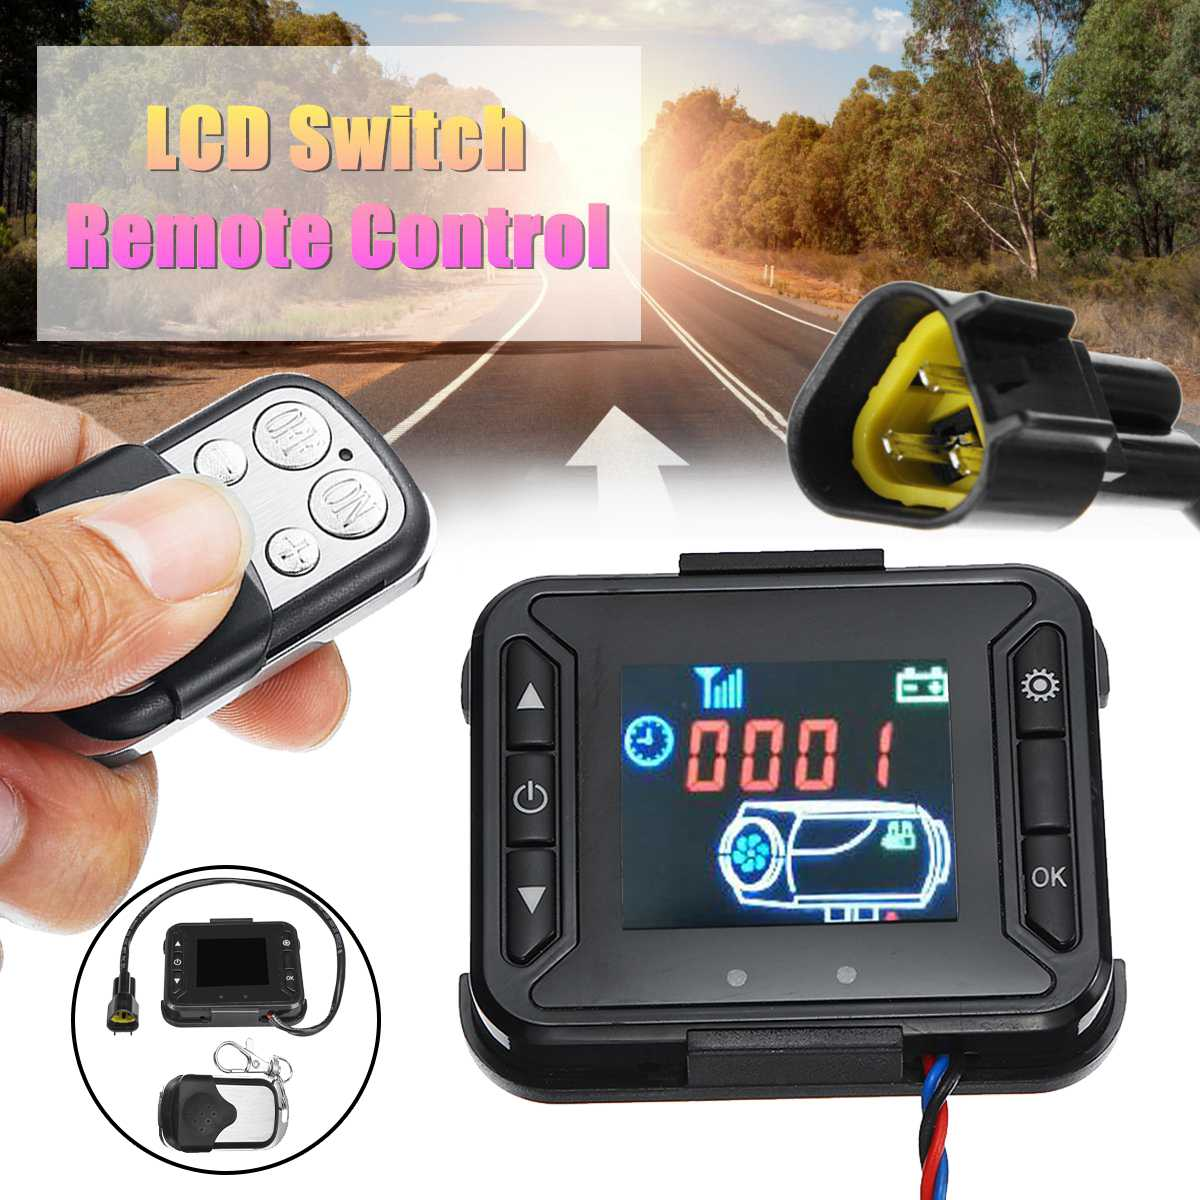 Remote Control For Car Diesel Air Heater Controller //// 12V LCD Monitor Switch